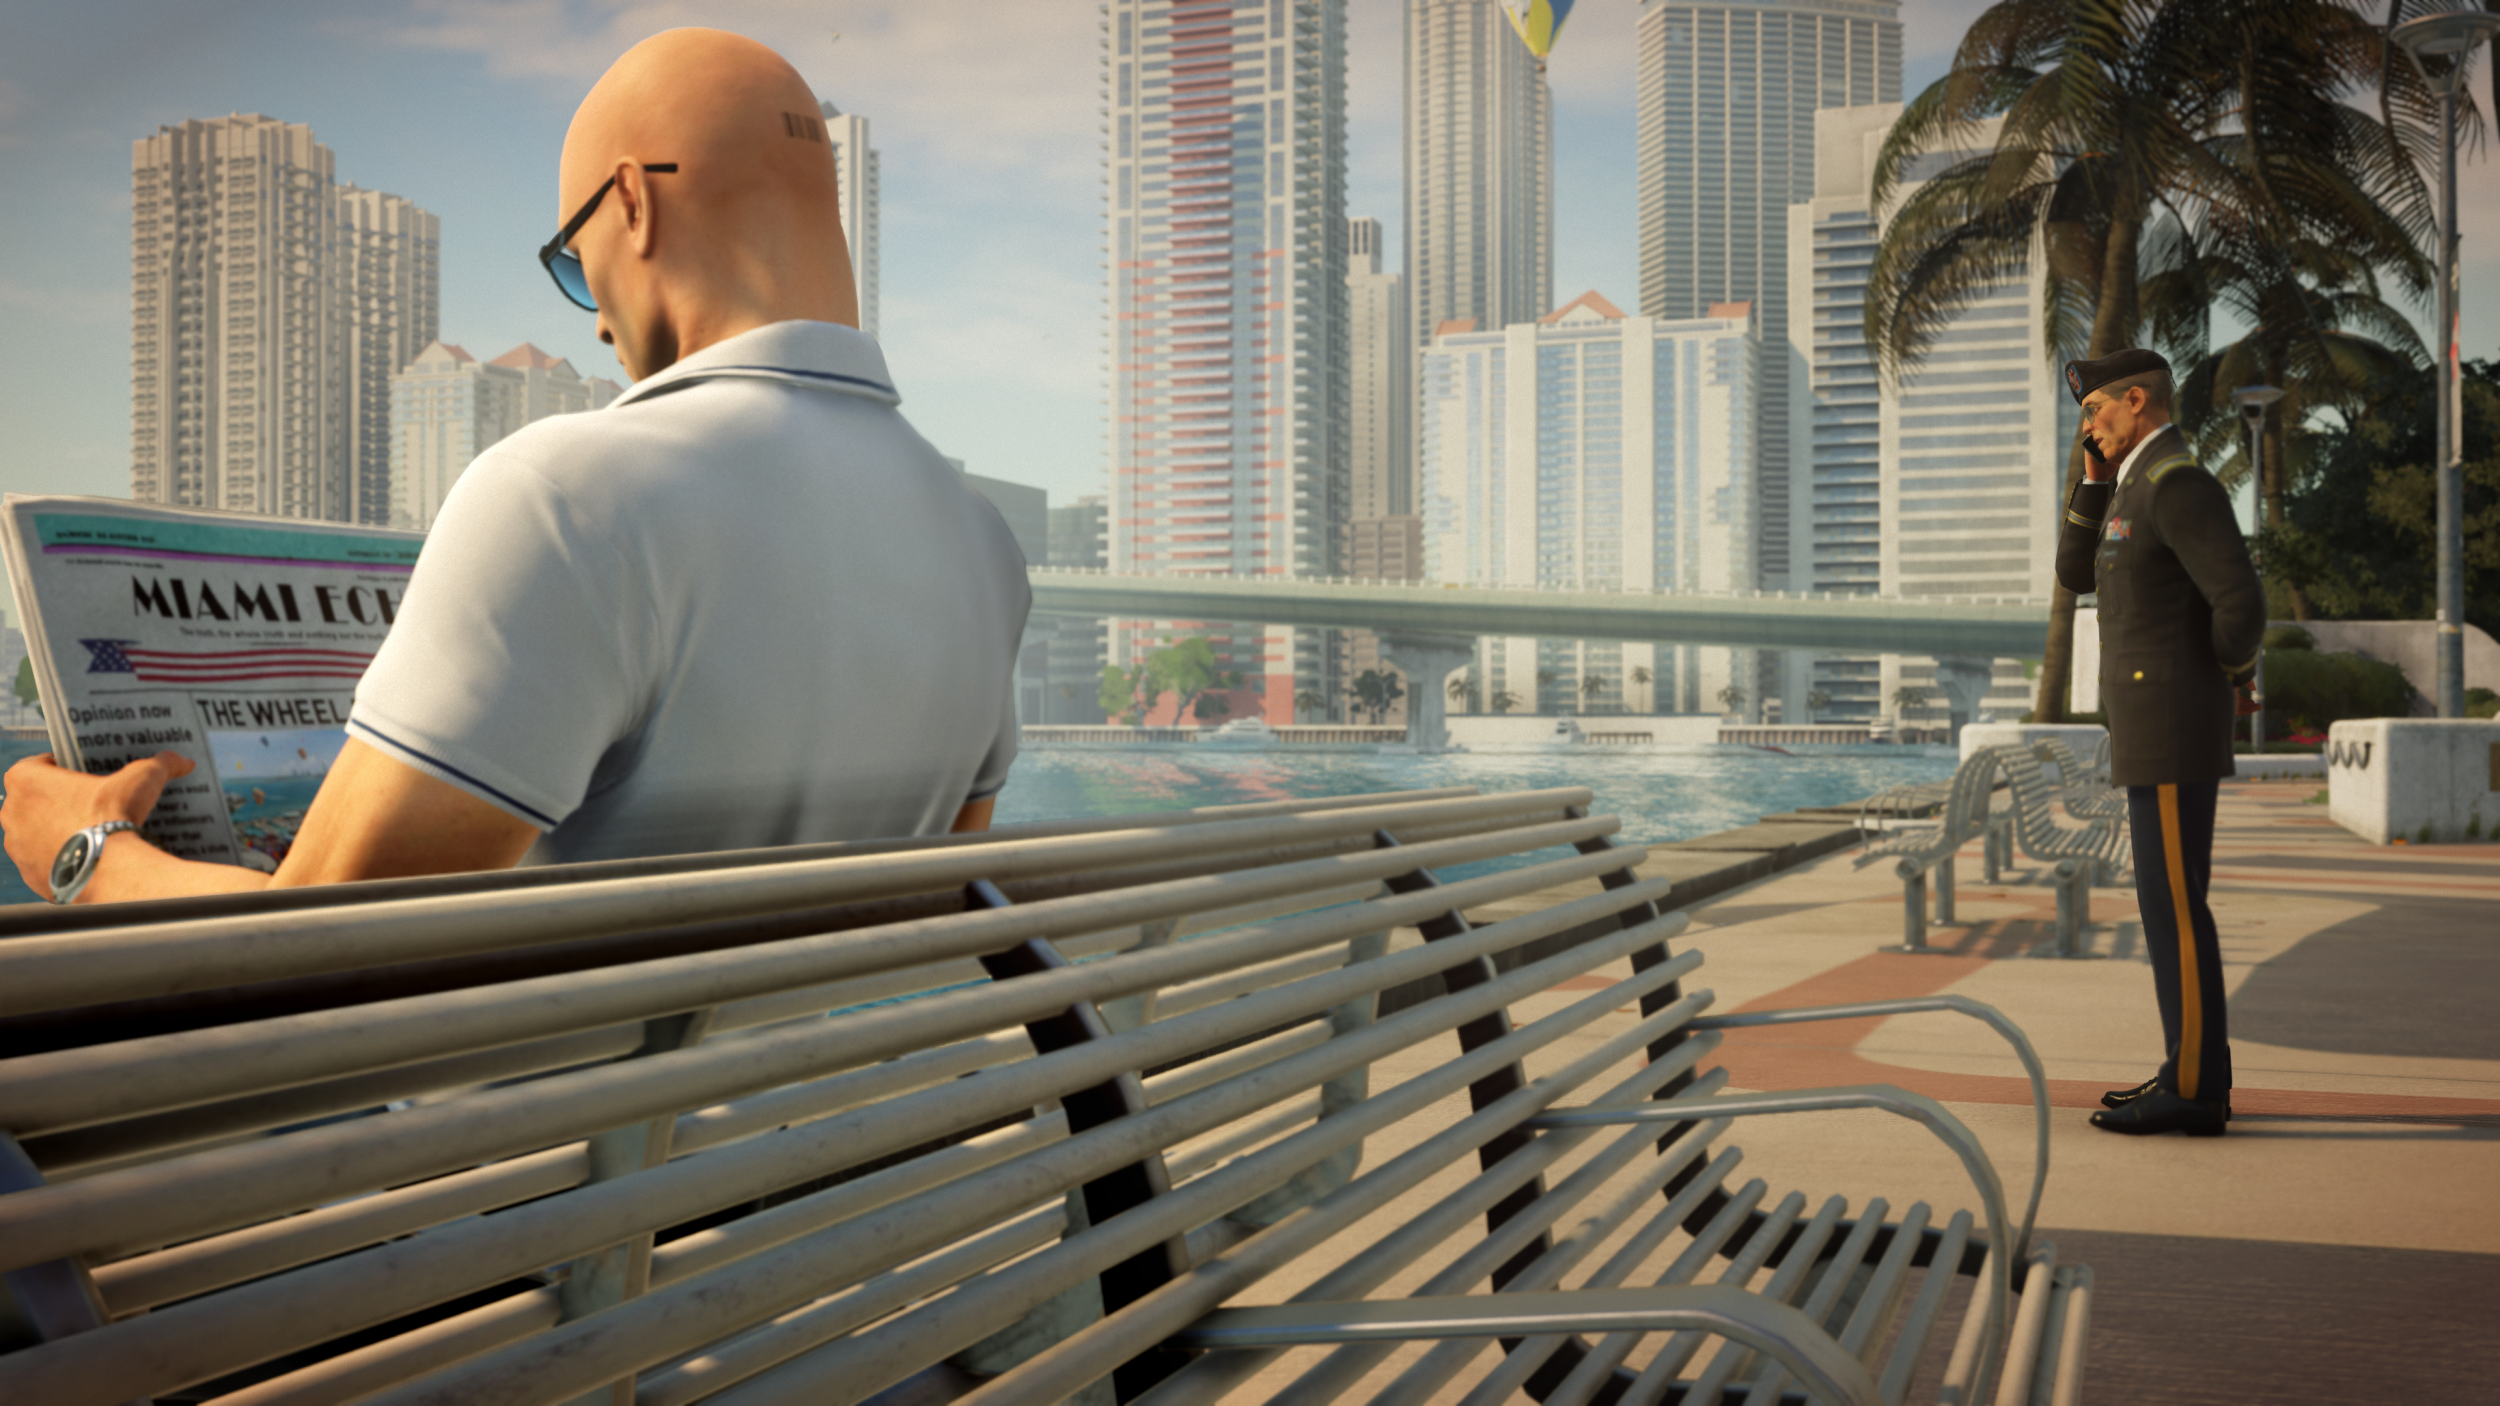 Hitman 2' Release Time - When Can I Download the Game on PS4